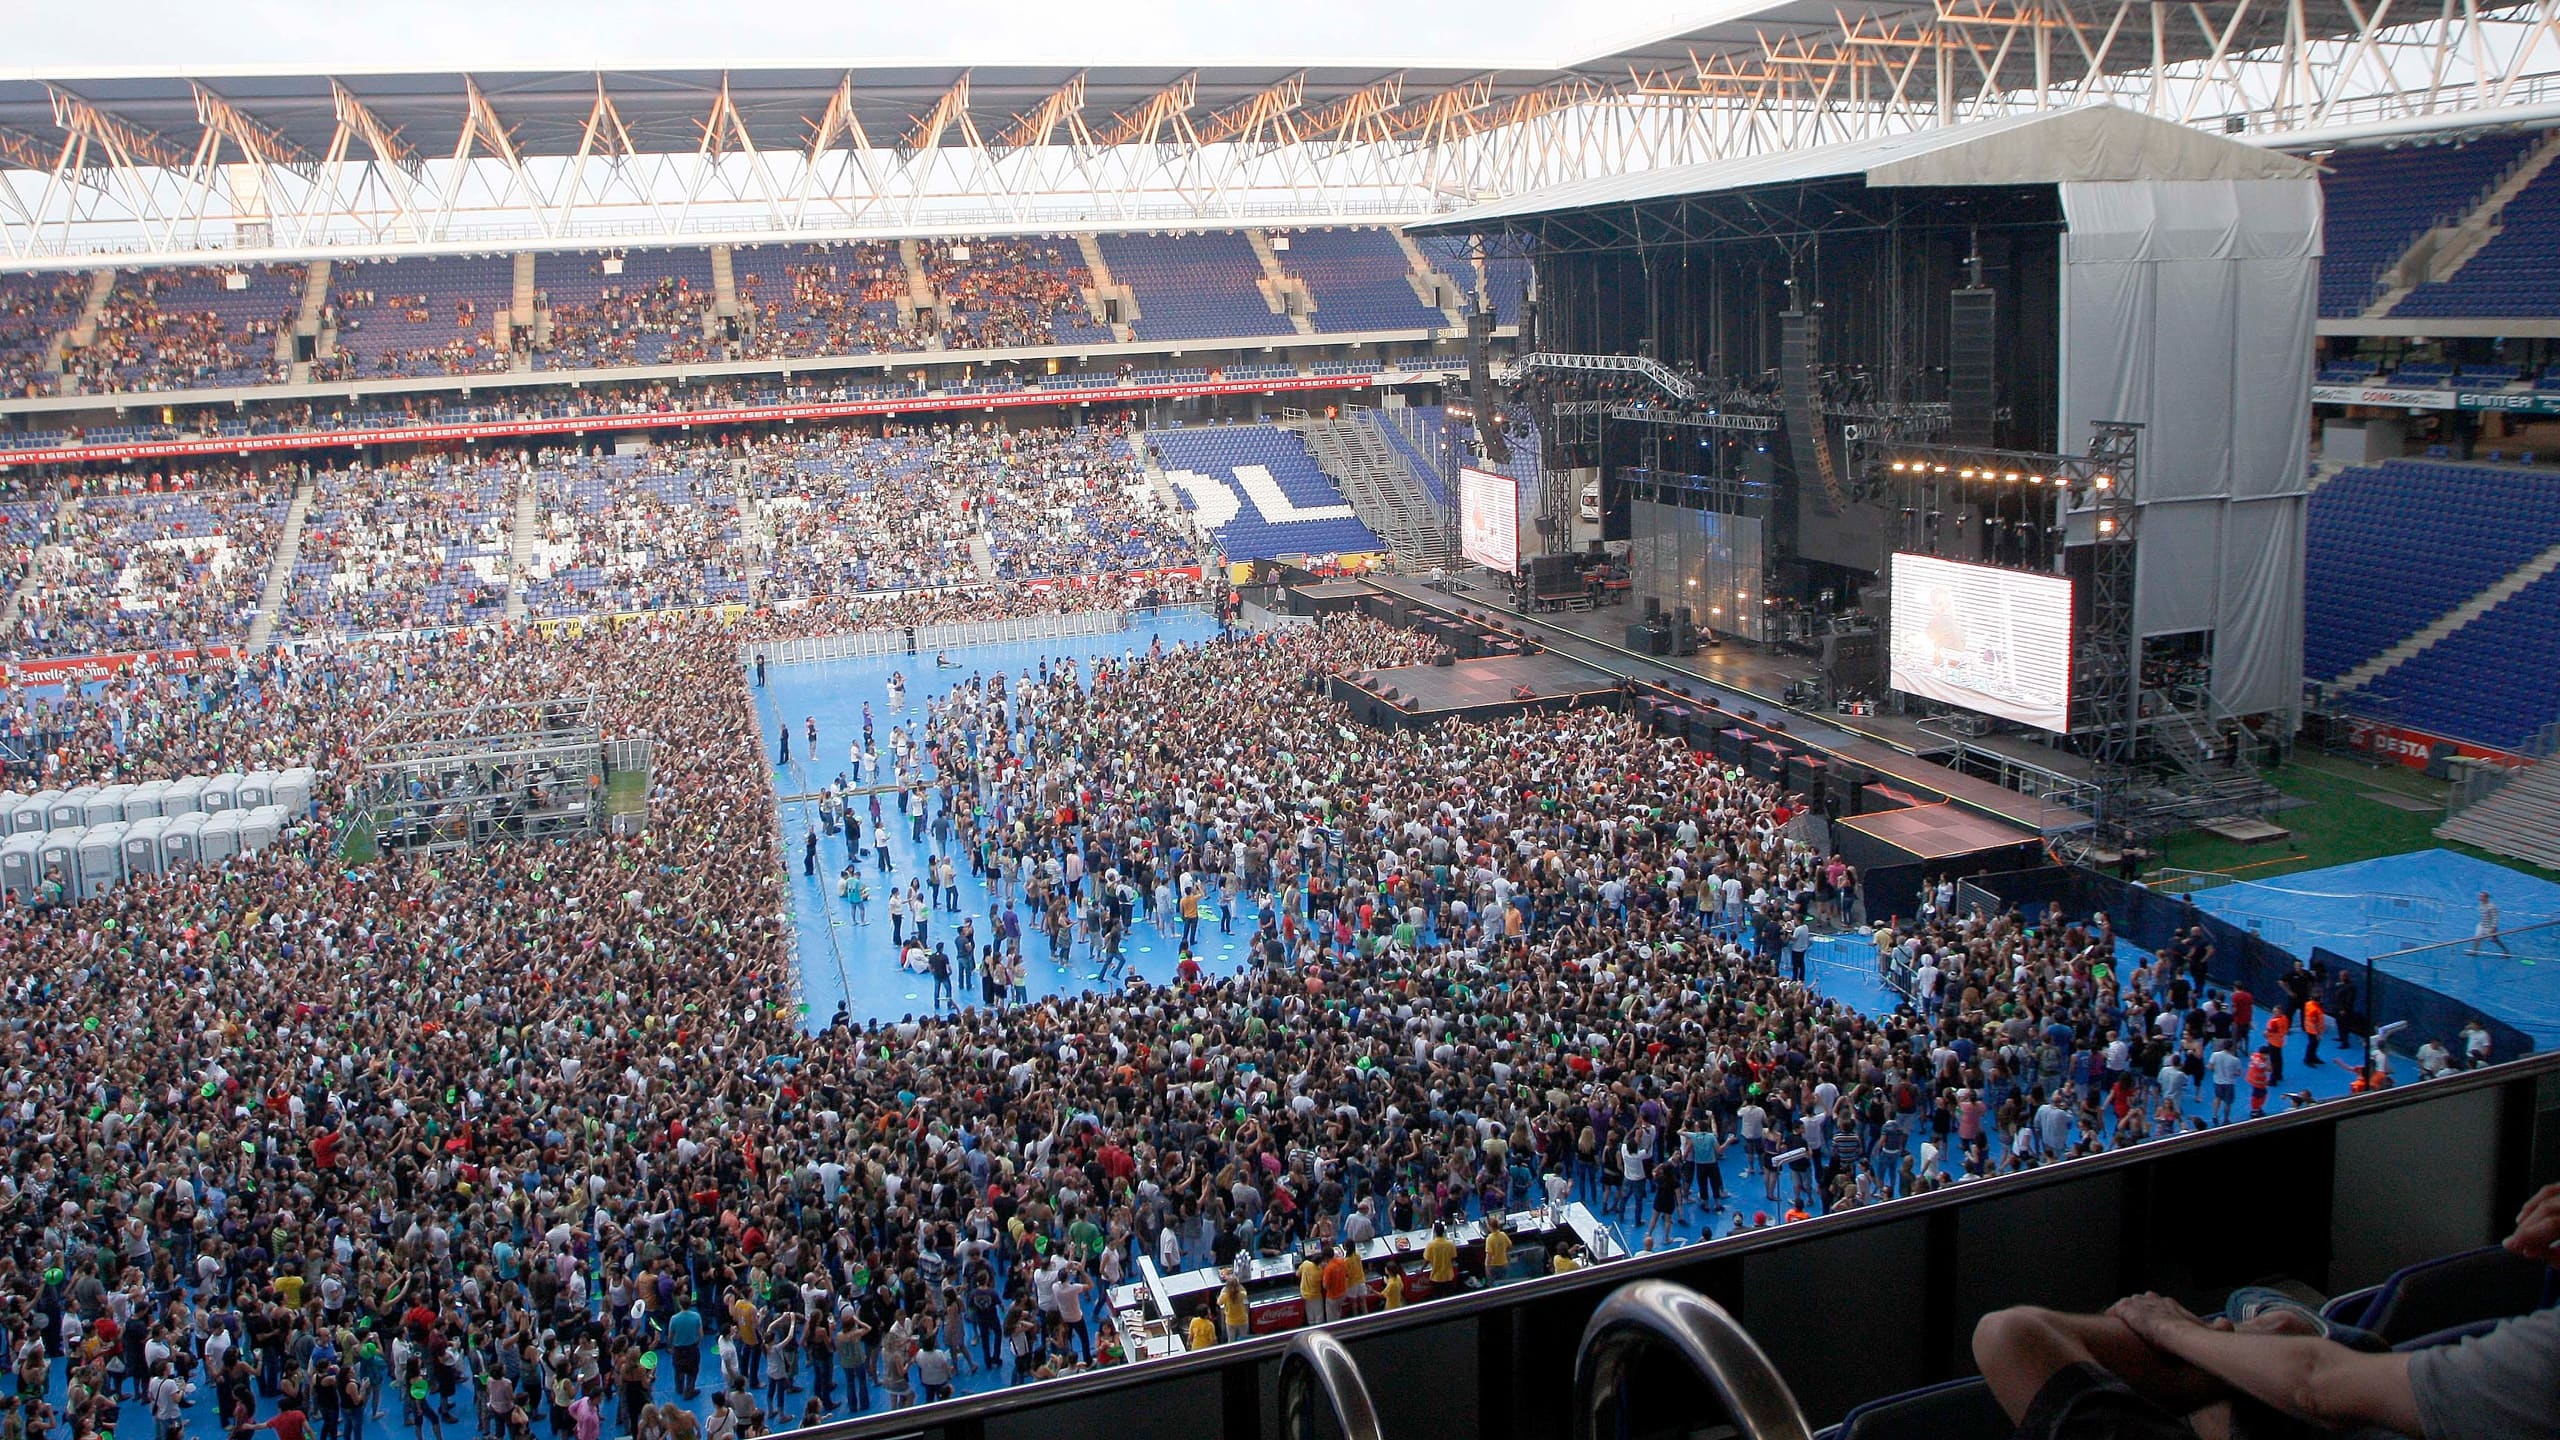 RCDE STADIUM MUSIC EVENTS